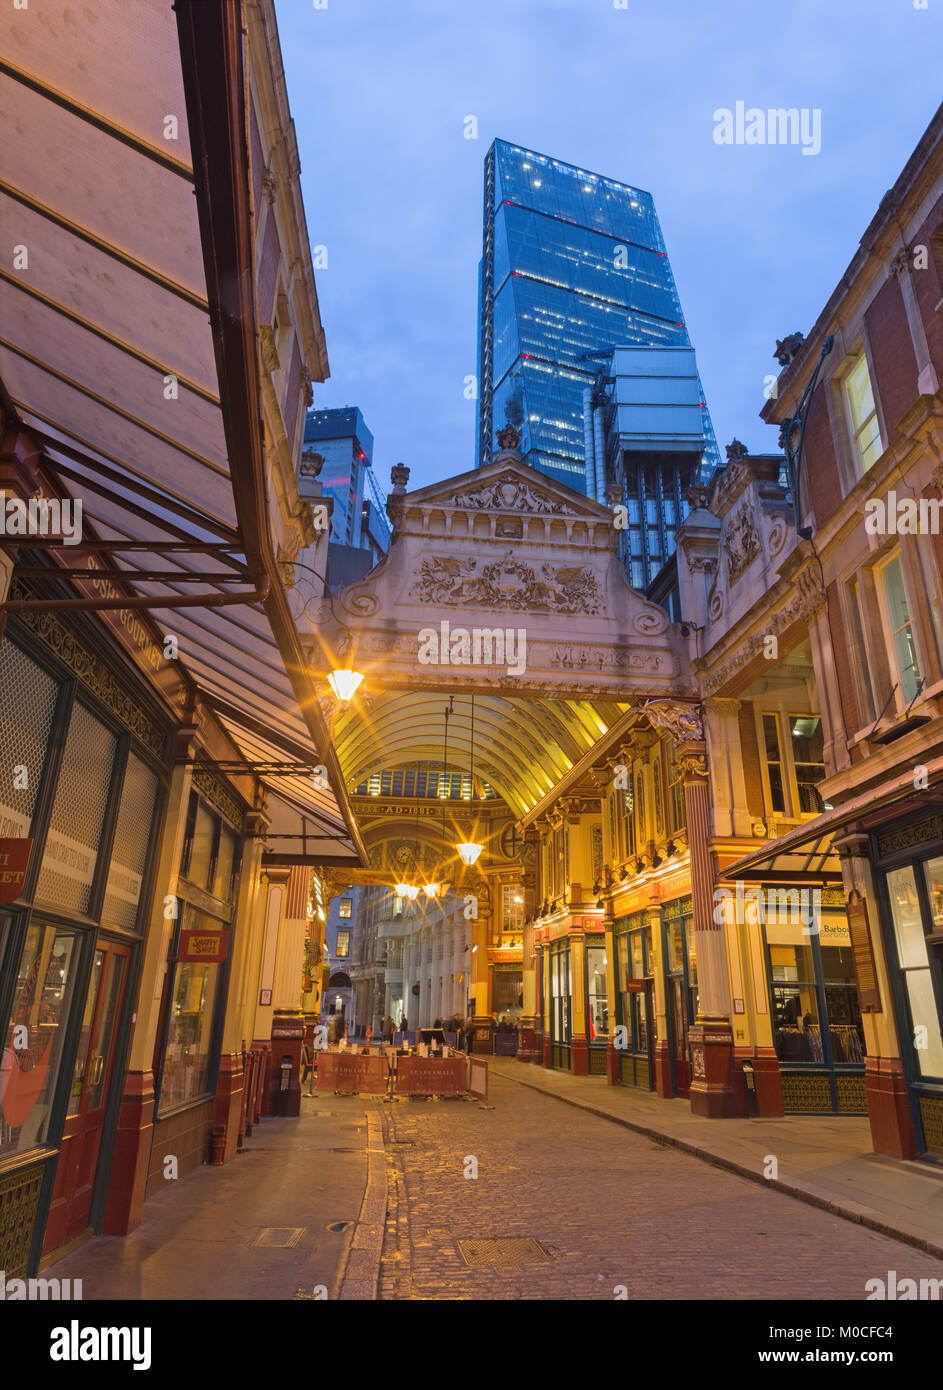 Paris, France - 18 septembre 2017 : Le Leadenhall Market et tour Leadenhall au crépuscule. Photo Stock